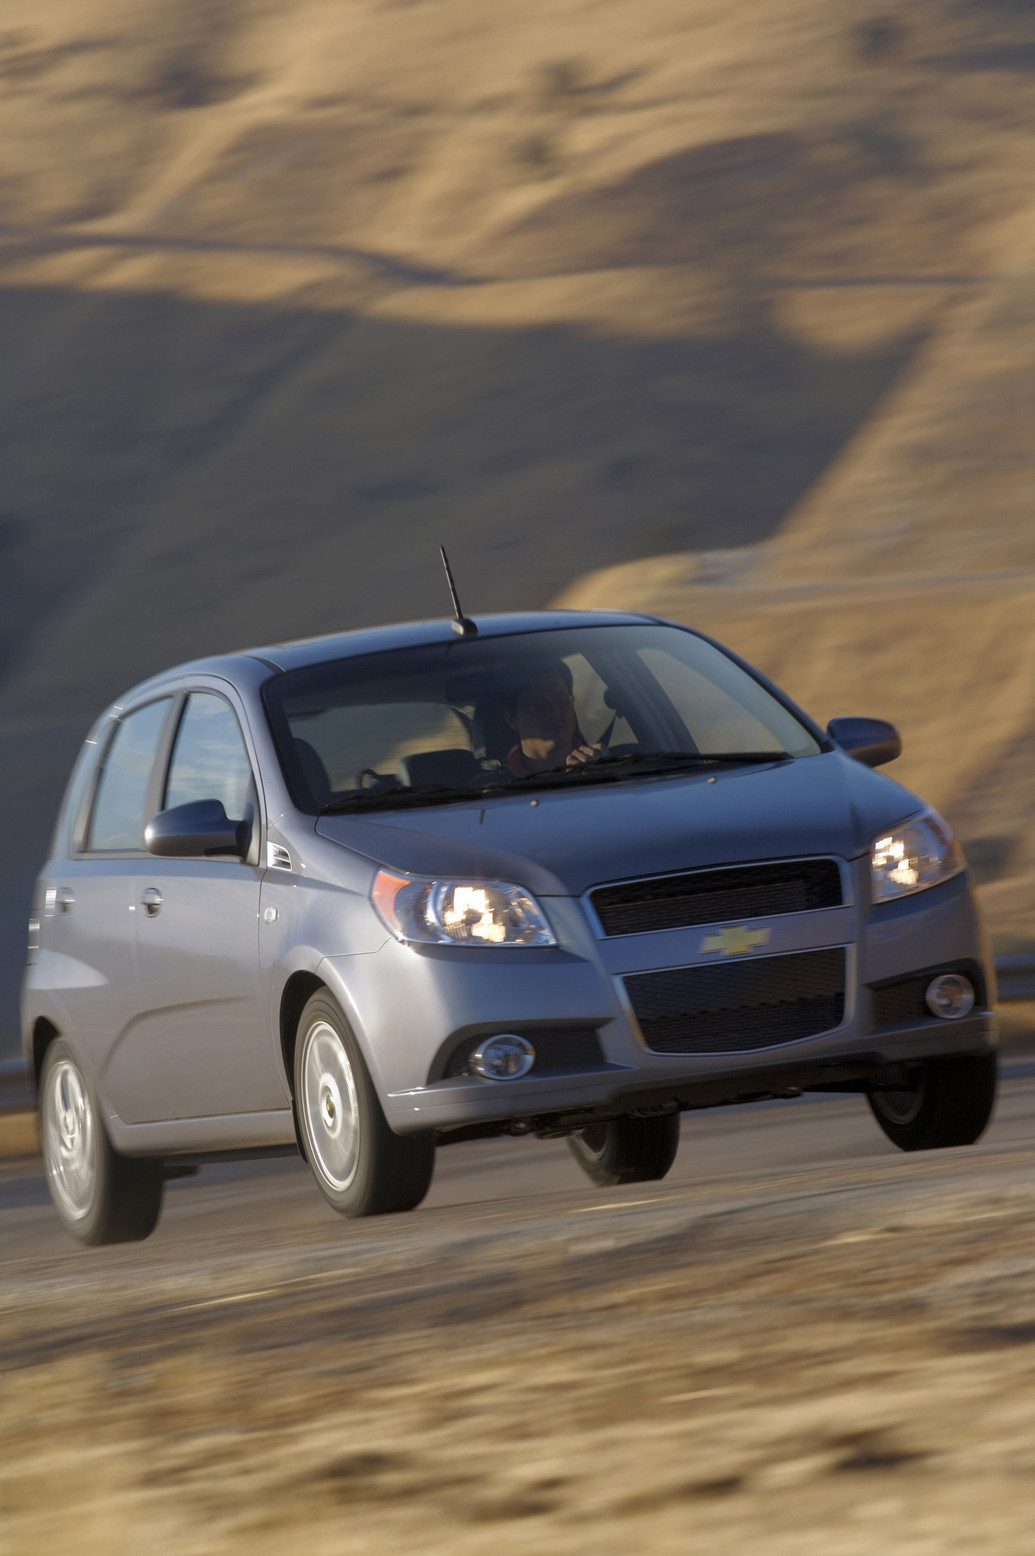 2011 chevrolet aveo 5 doors reviews photos price specifications. Black Bedroom Furniture Sets. Home Design Ideas